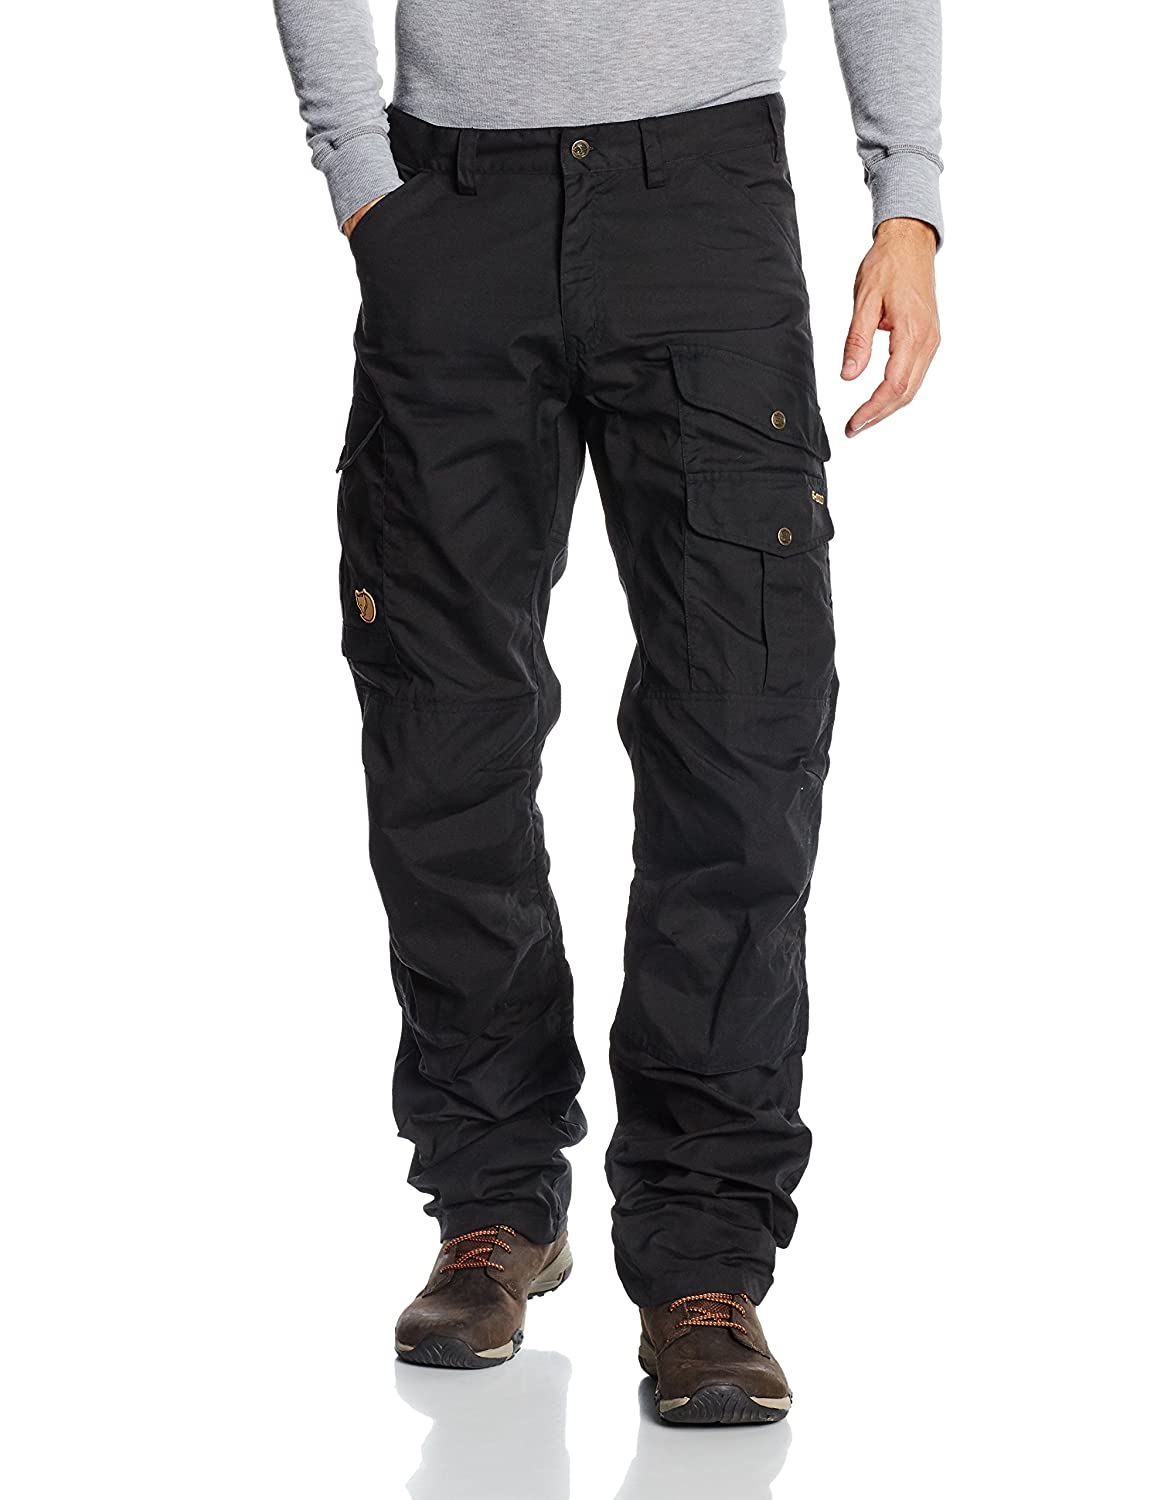 60%OFF Fjallraven Men s Barents Pro Trousers Pants fc0caeede9dbe